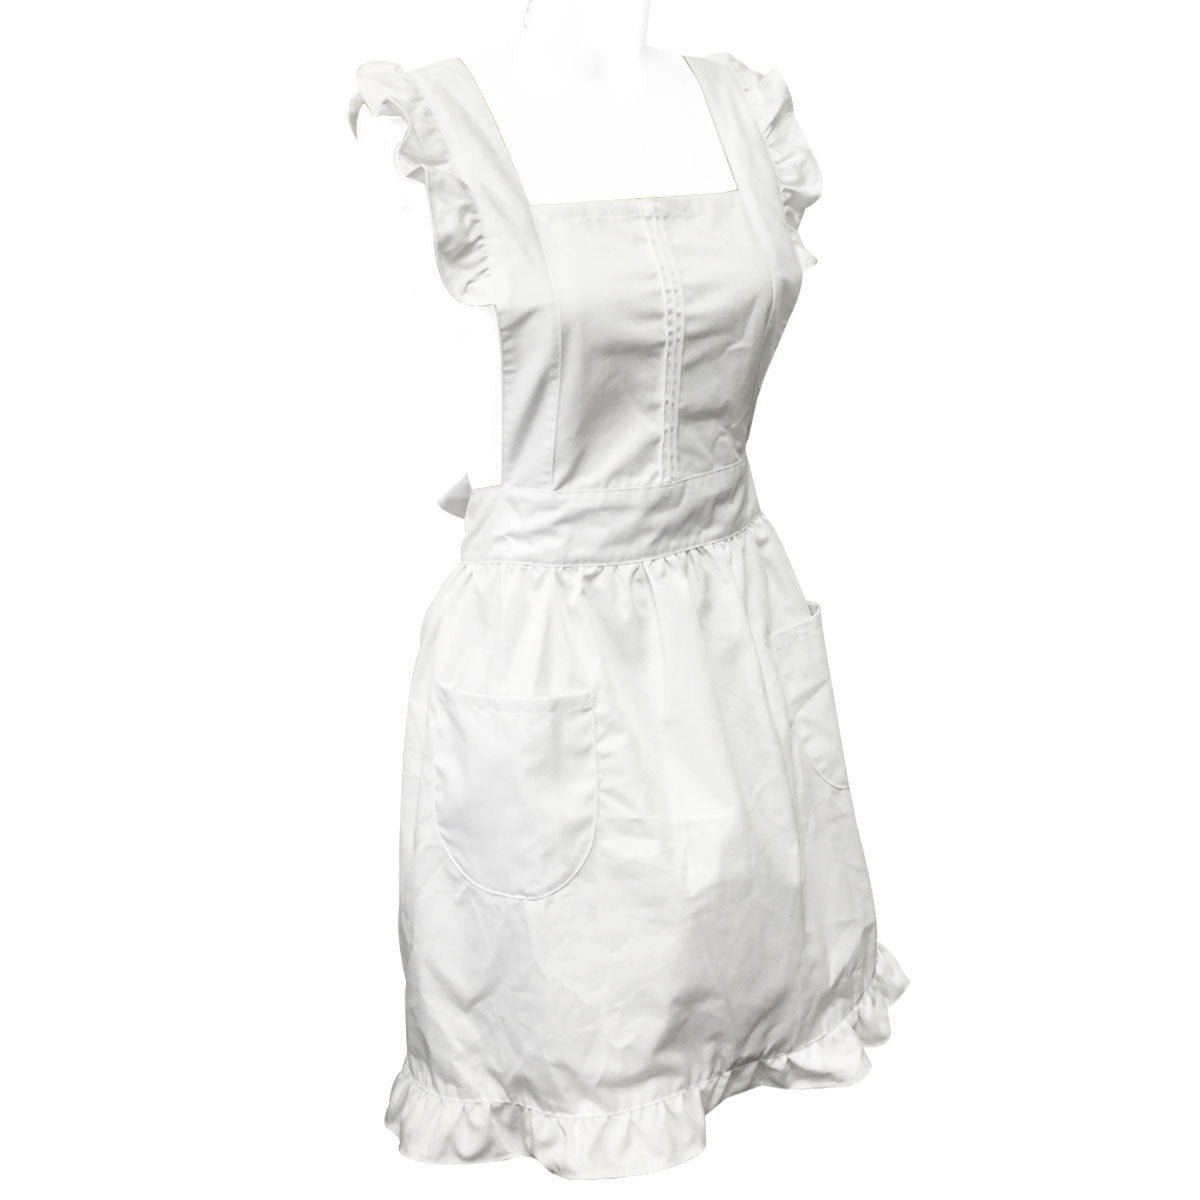 Wrapables Retro White Apron with Pockets for Cooking or Cosplay